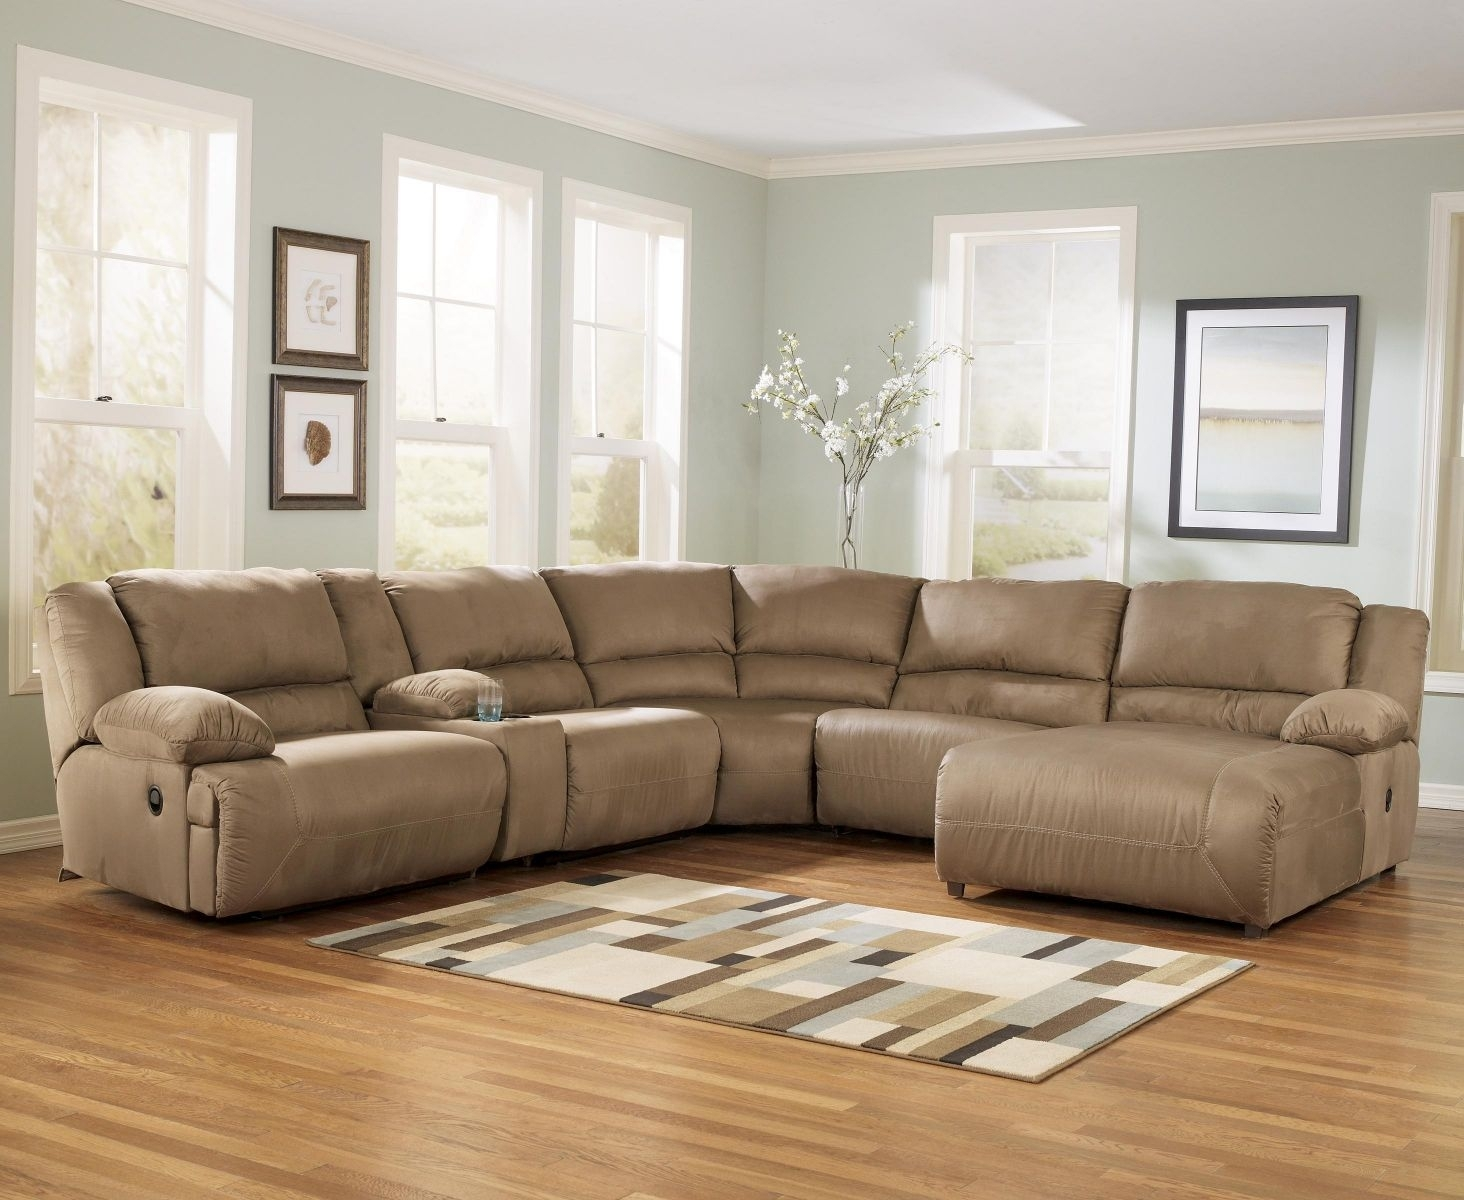 Appealing Sectional Sofa Austin Microfiber Pict Of Furniture Stores Throughout Austin Sectional Sofas (View 10 of 10)